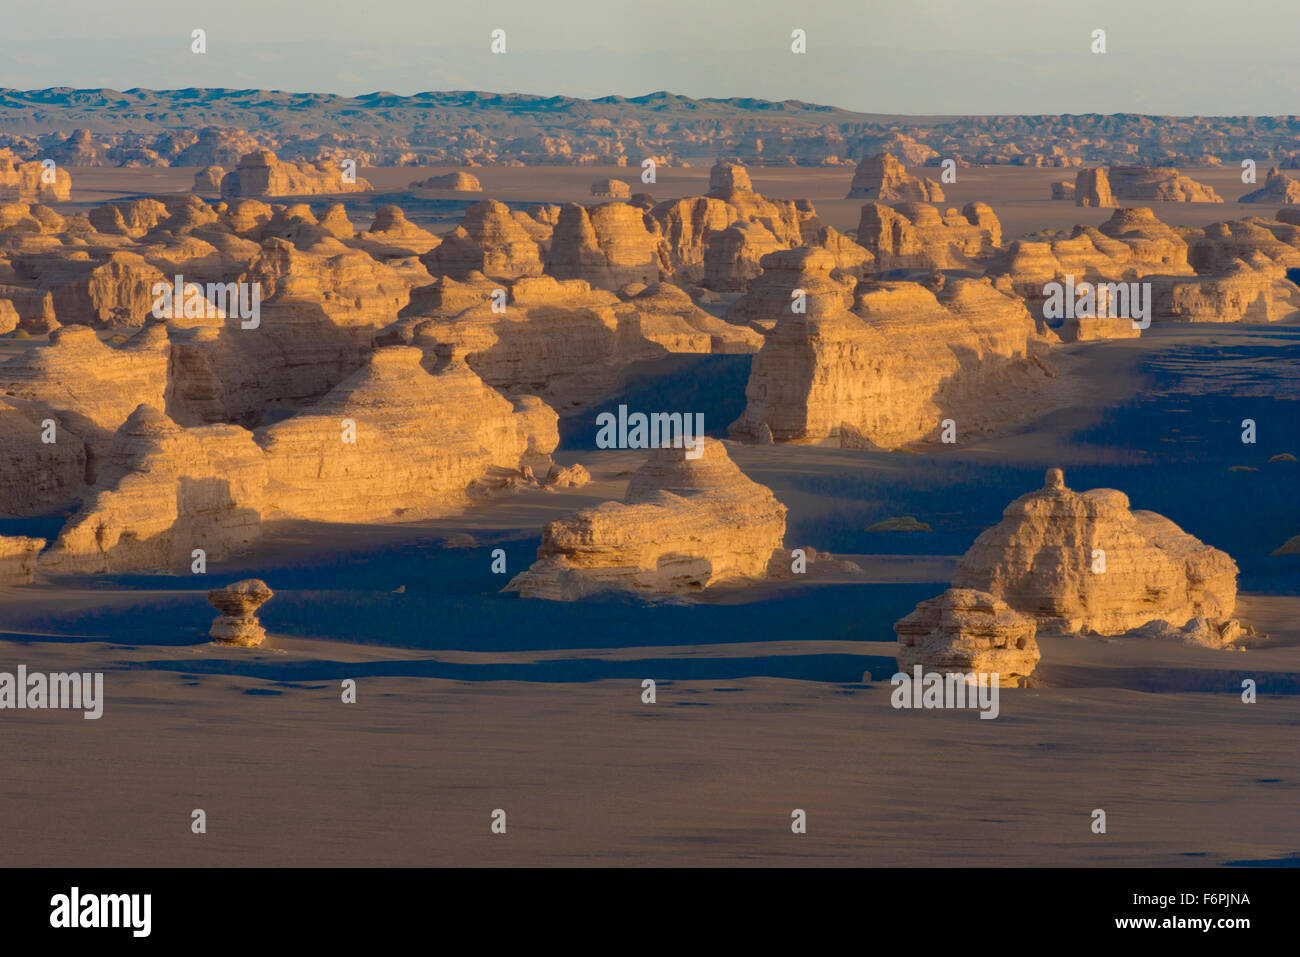 Dunhunag Yardang National Geopark, China  Gobi Desert, Great Silk Road - Stock Image